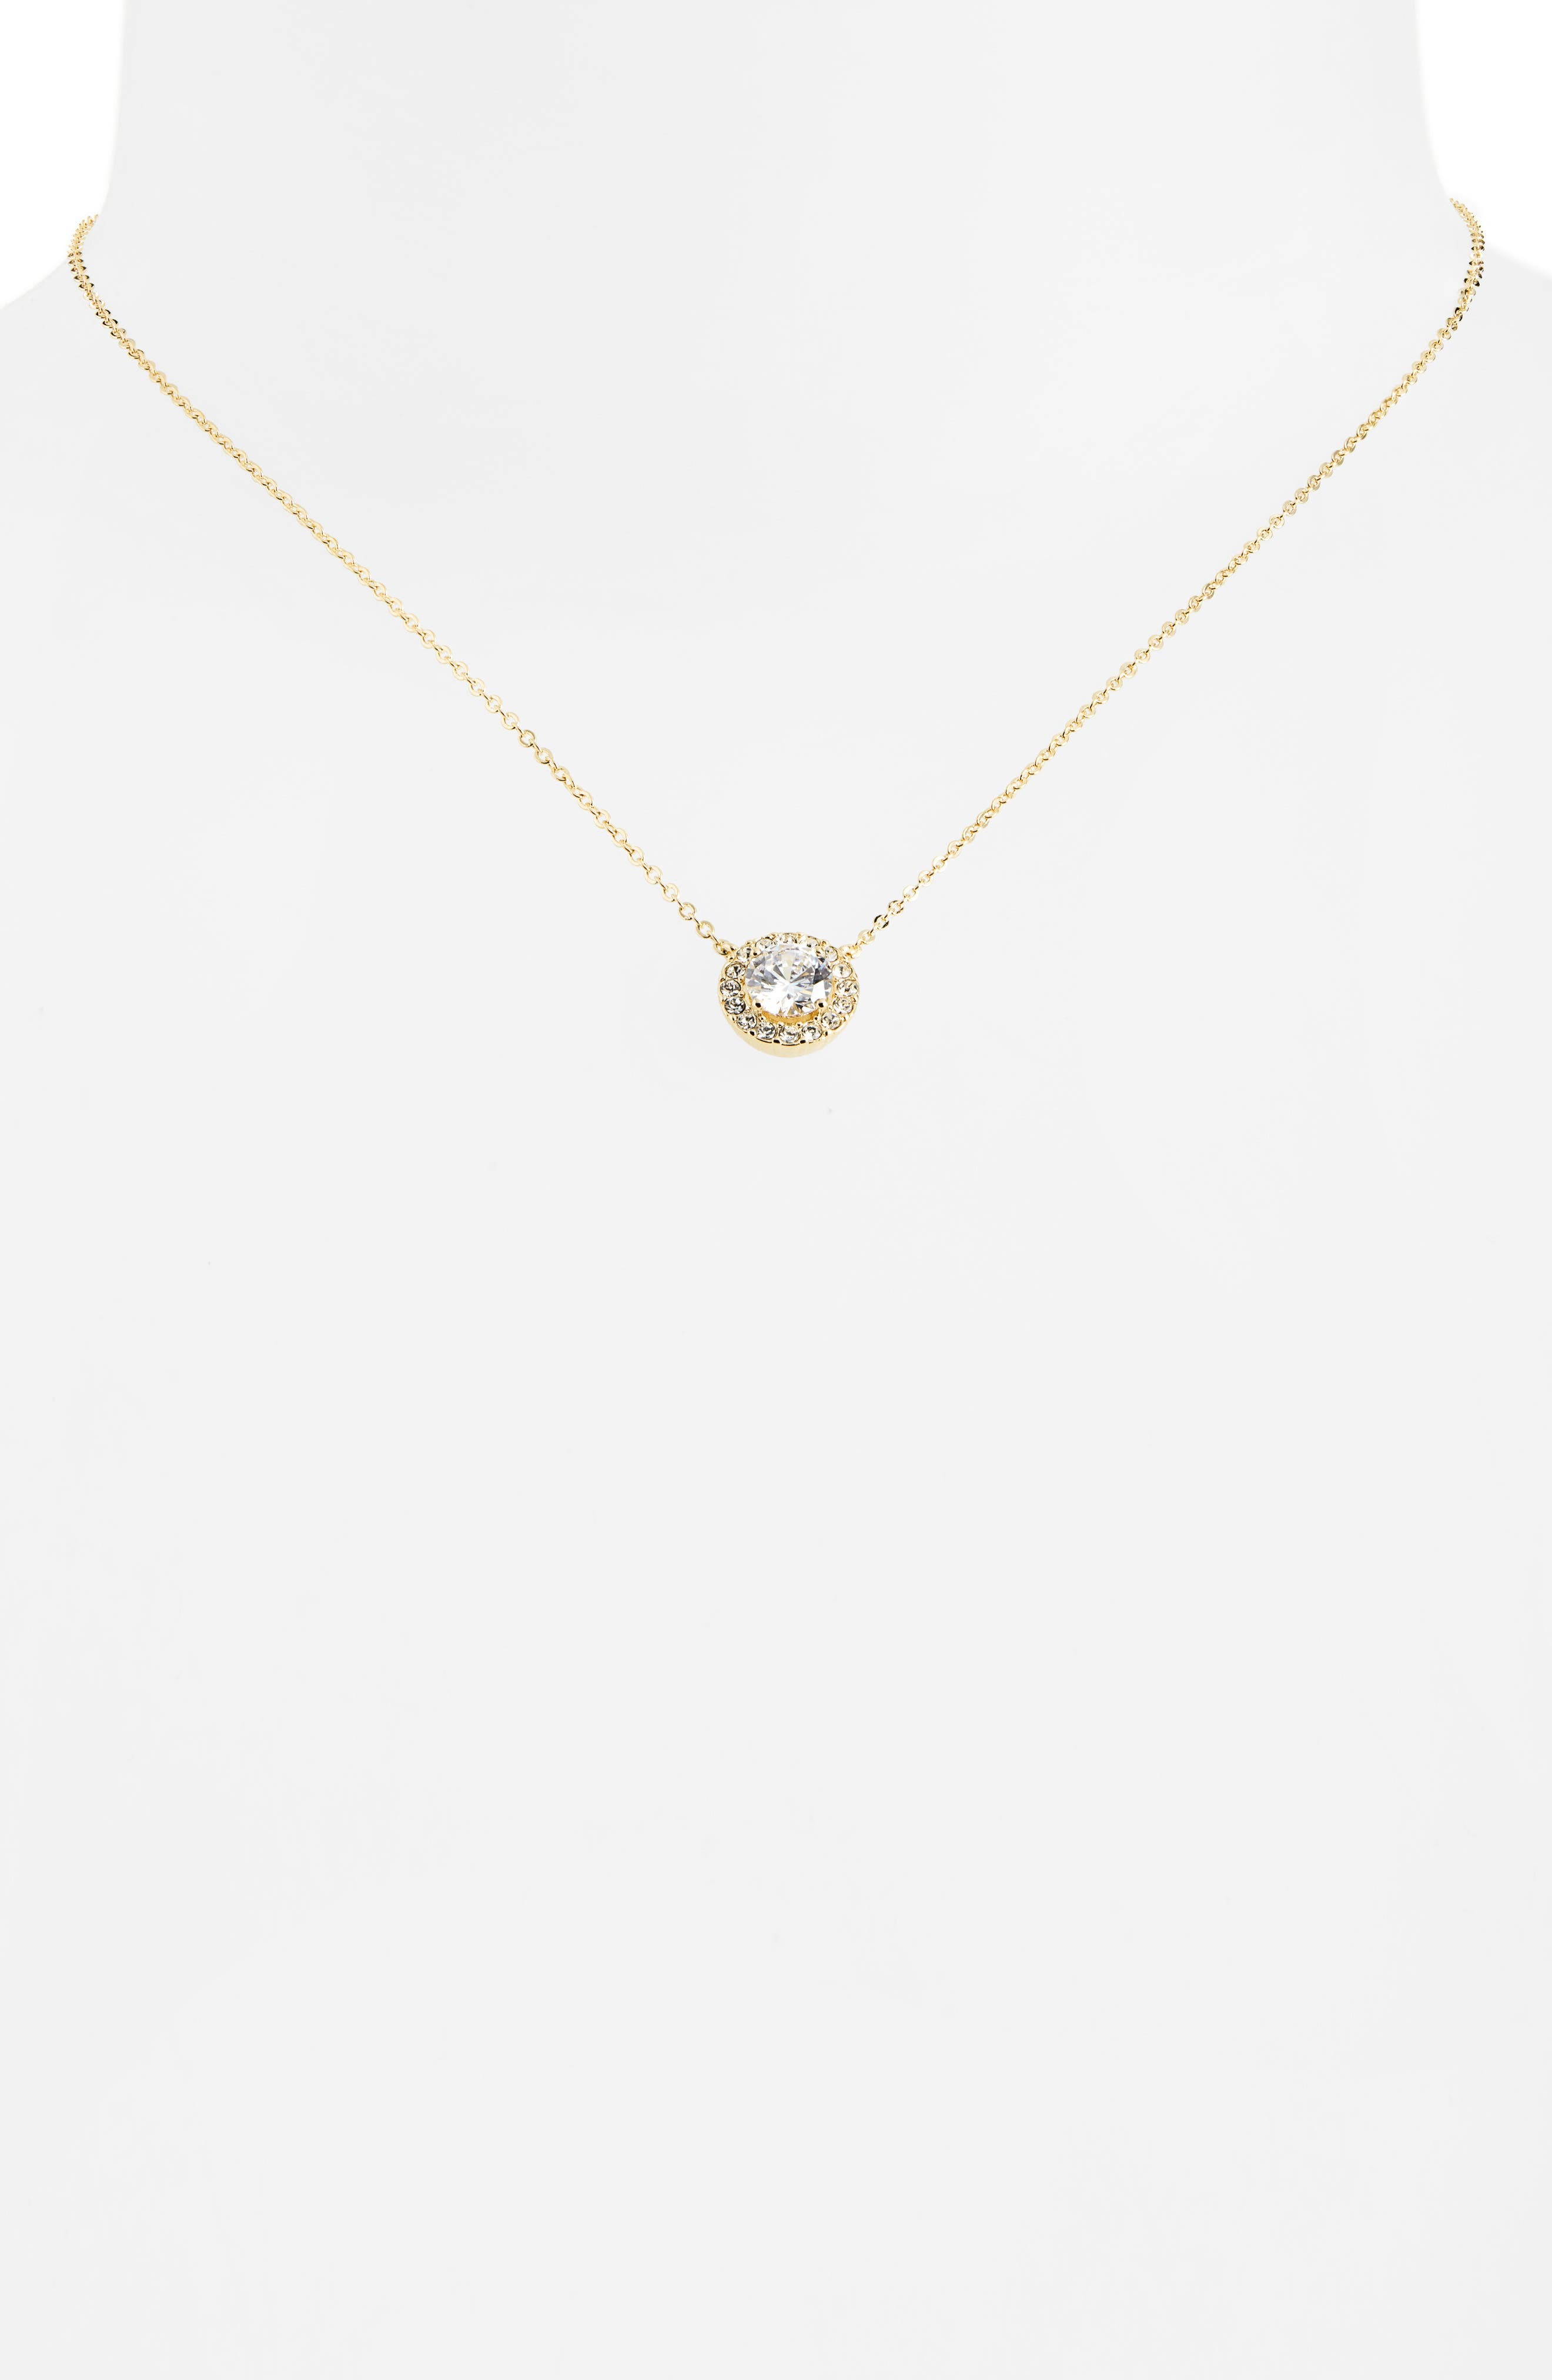 NORDSTROM,                             Cubic Zirconia Pendant Necklace,                             Alternate thumbnail 2, color,                             CLEAR- GOLD